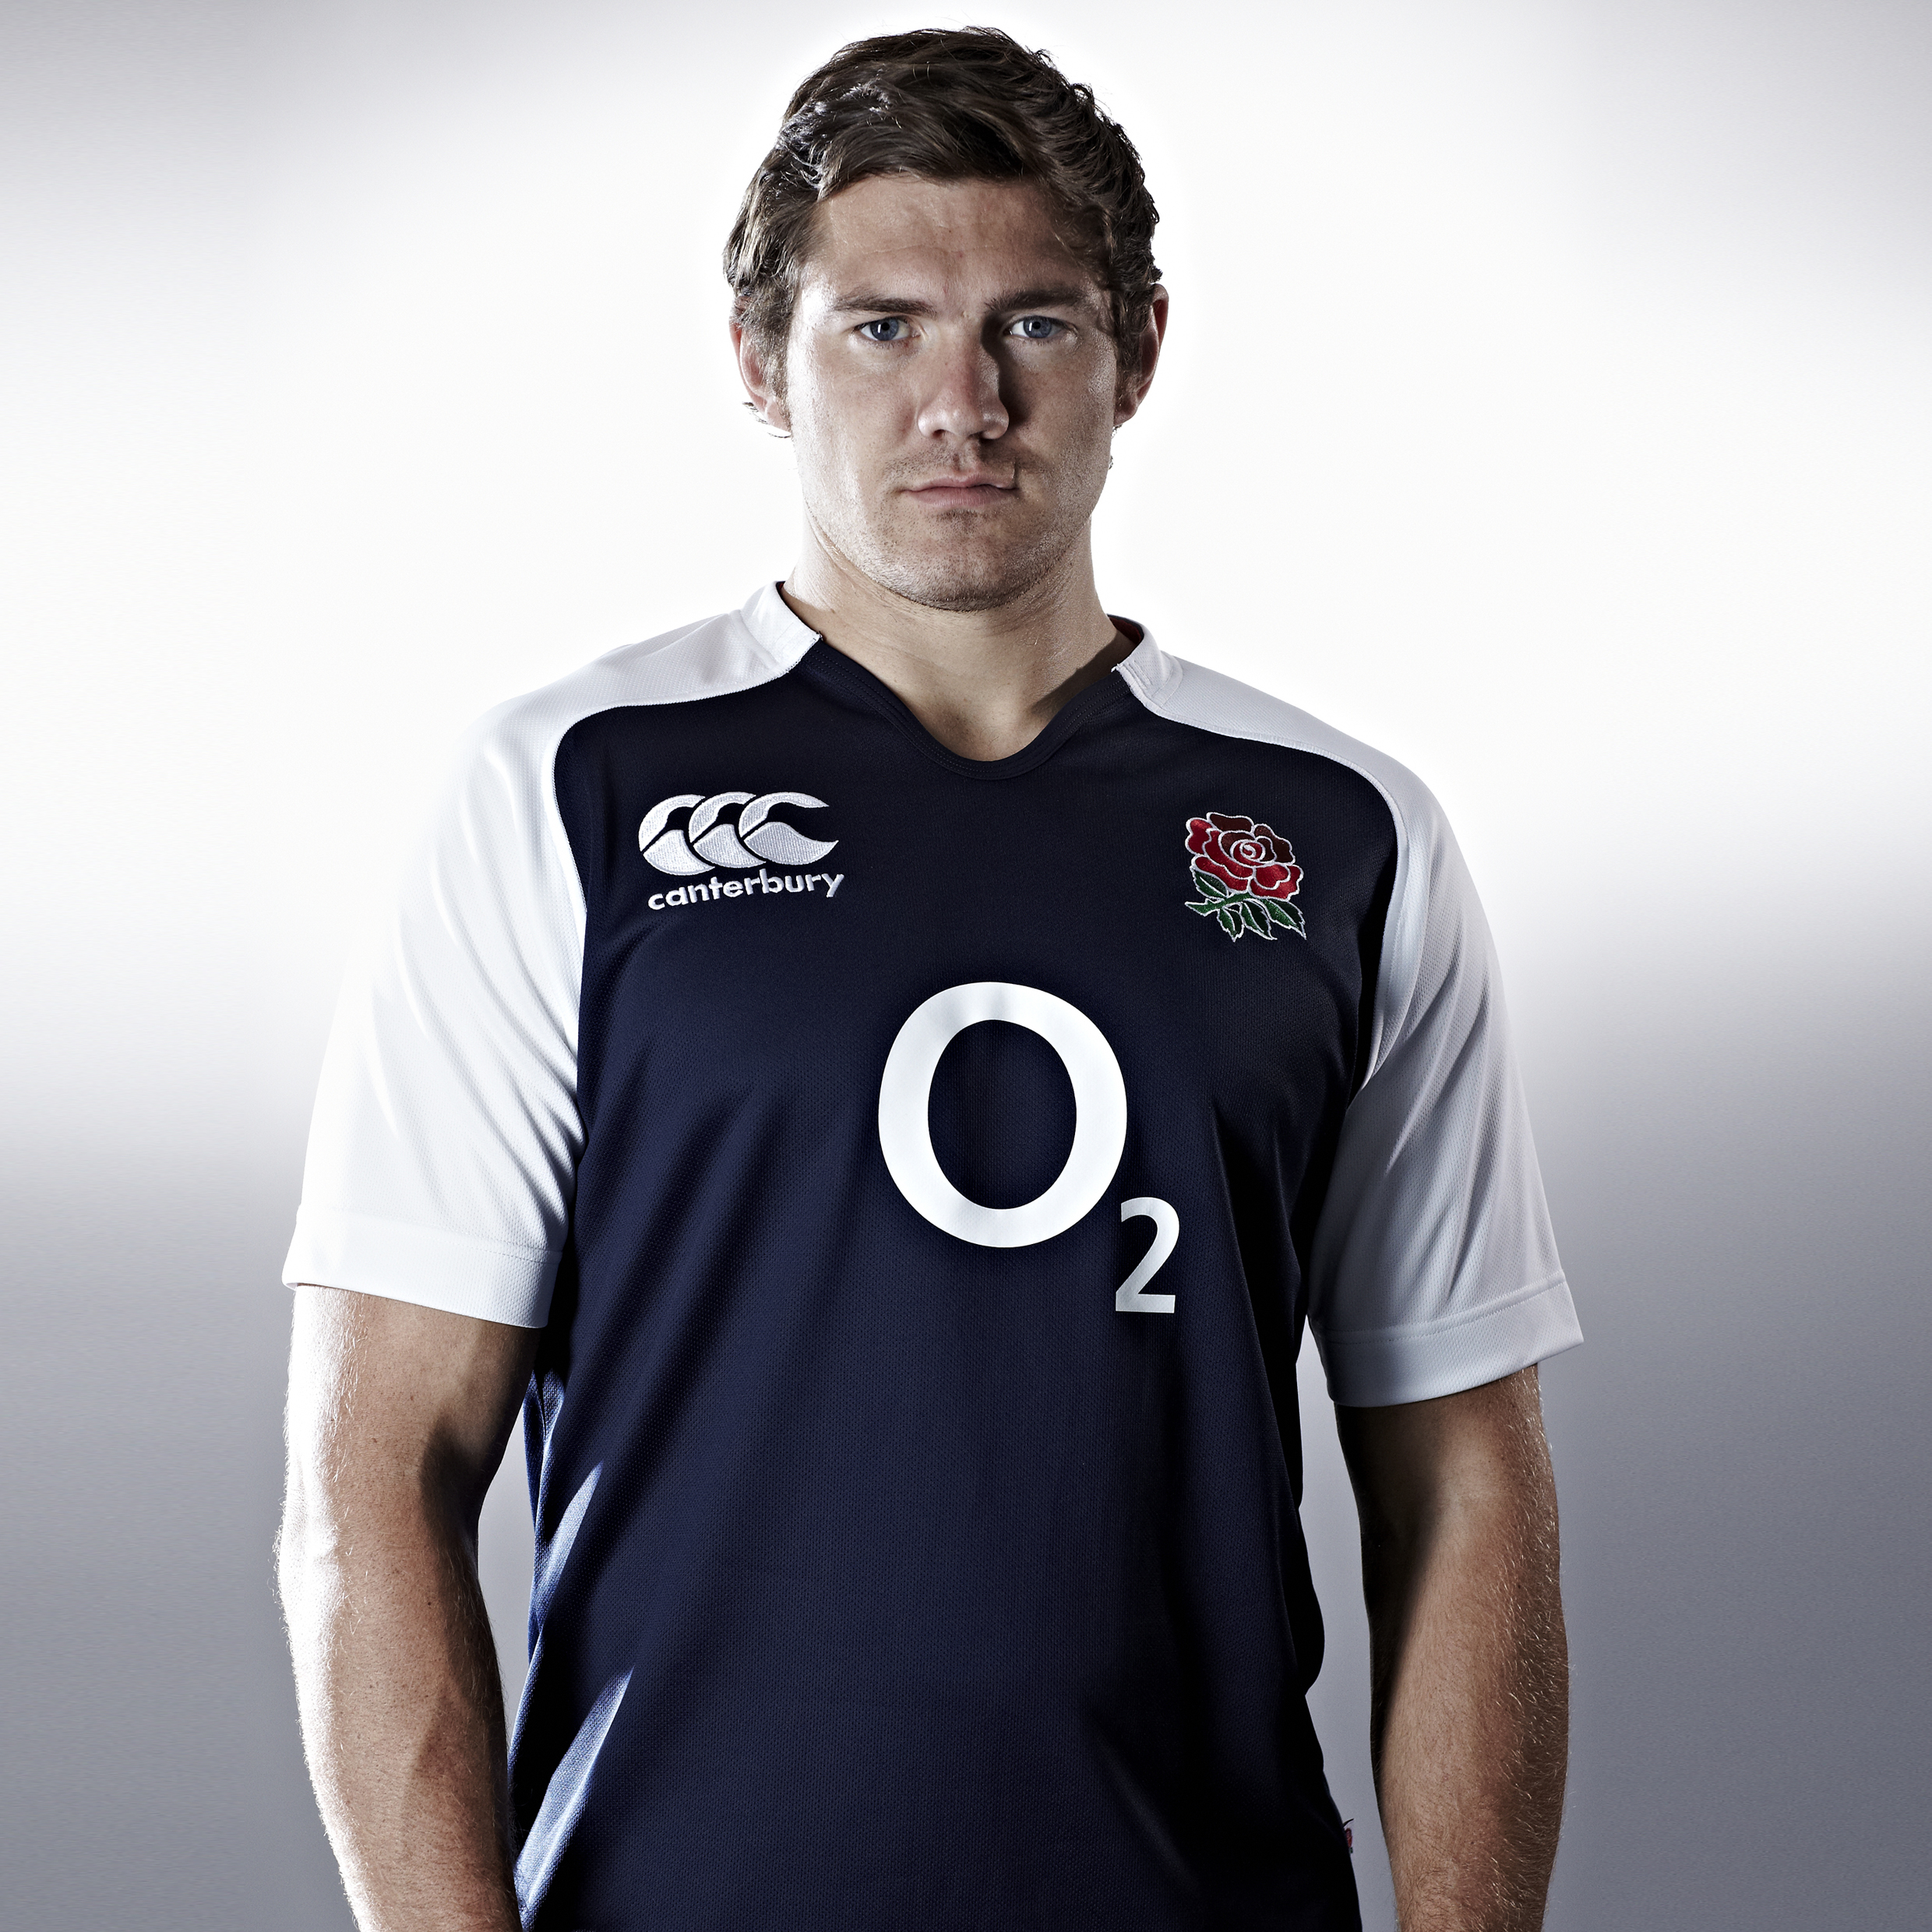 England Training Rugby Pro Top S/S - Navy / White